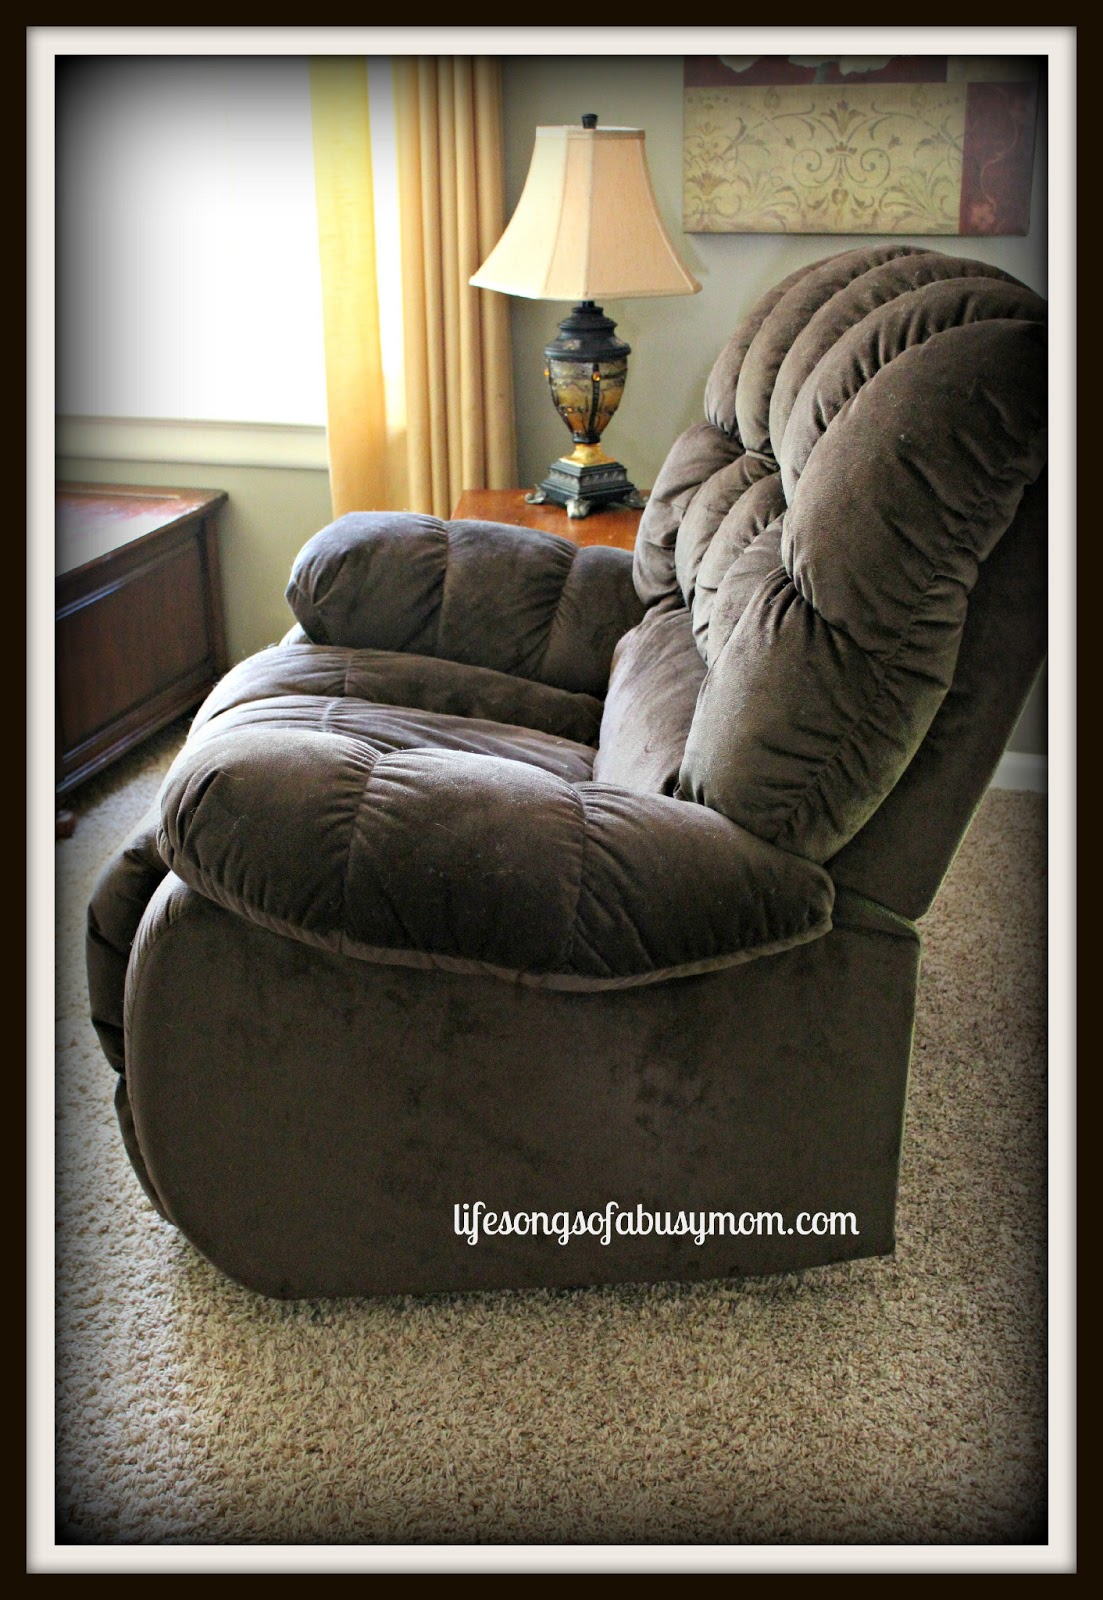 About a month or so ago I was given the opportunity to review The Beast recliner in Roscoe. Best Home Furnishings offers many different shapes ... & Life Songs Of A Busy Mom: Best Home Furnishings Recliner Review ... islam-shia.org